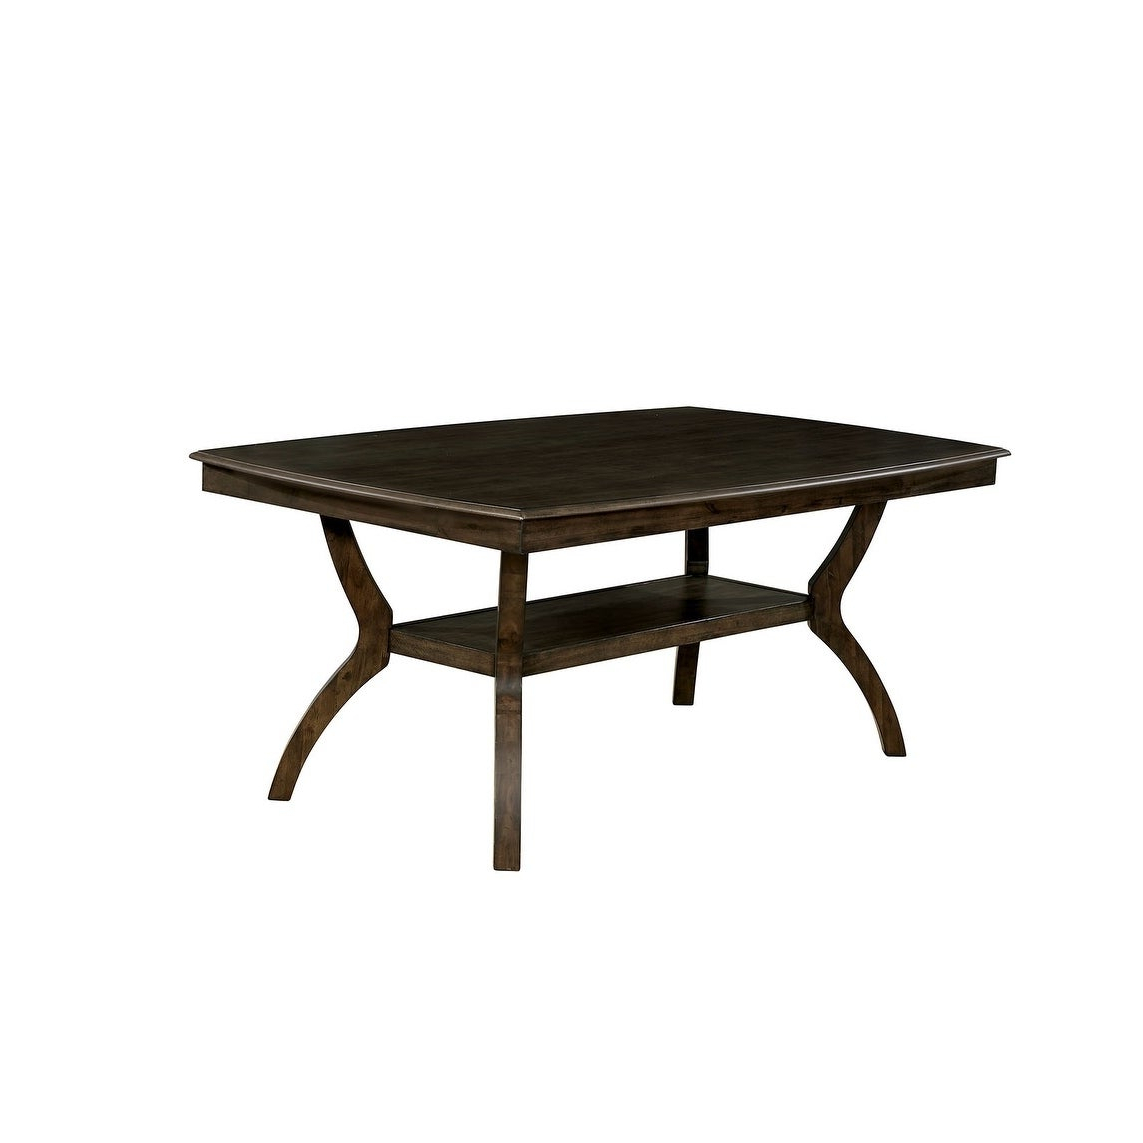 Transitional Style Solid Wood Rectangular Dining Table With Flowing Leg Base Design , Brown With Most Current Transitional Rectangular Dining Tables (View 10 of 30)